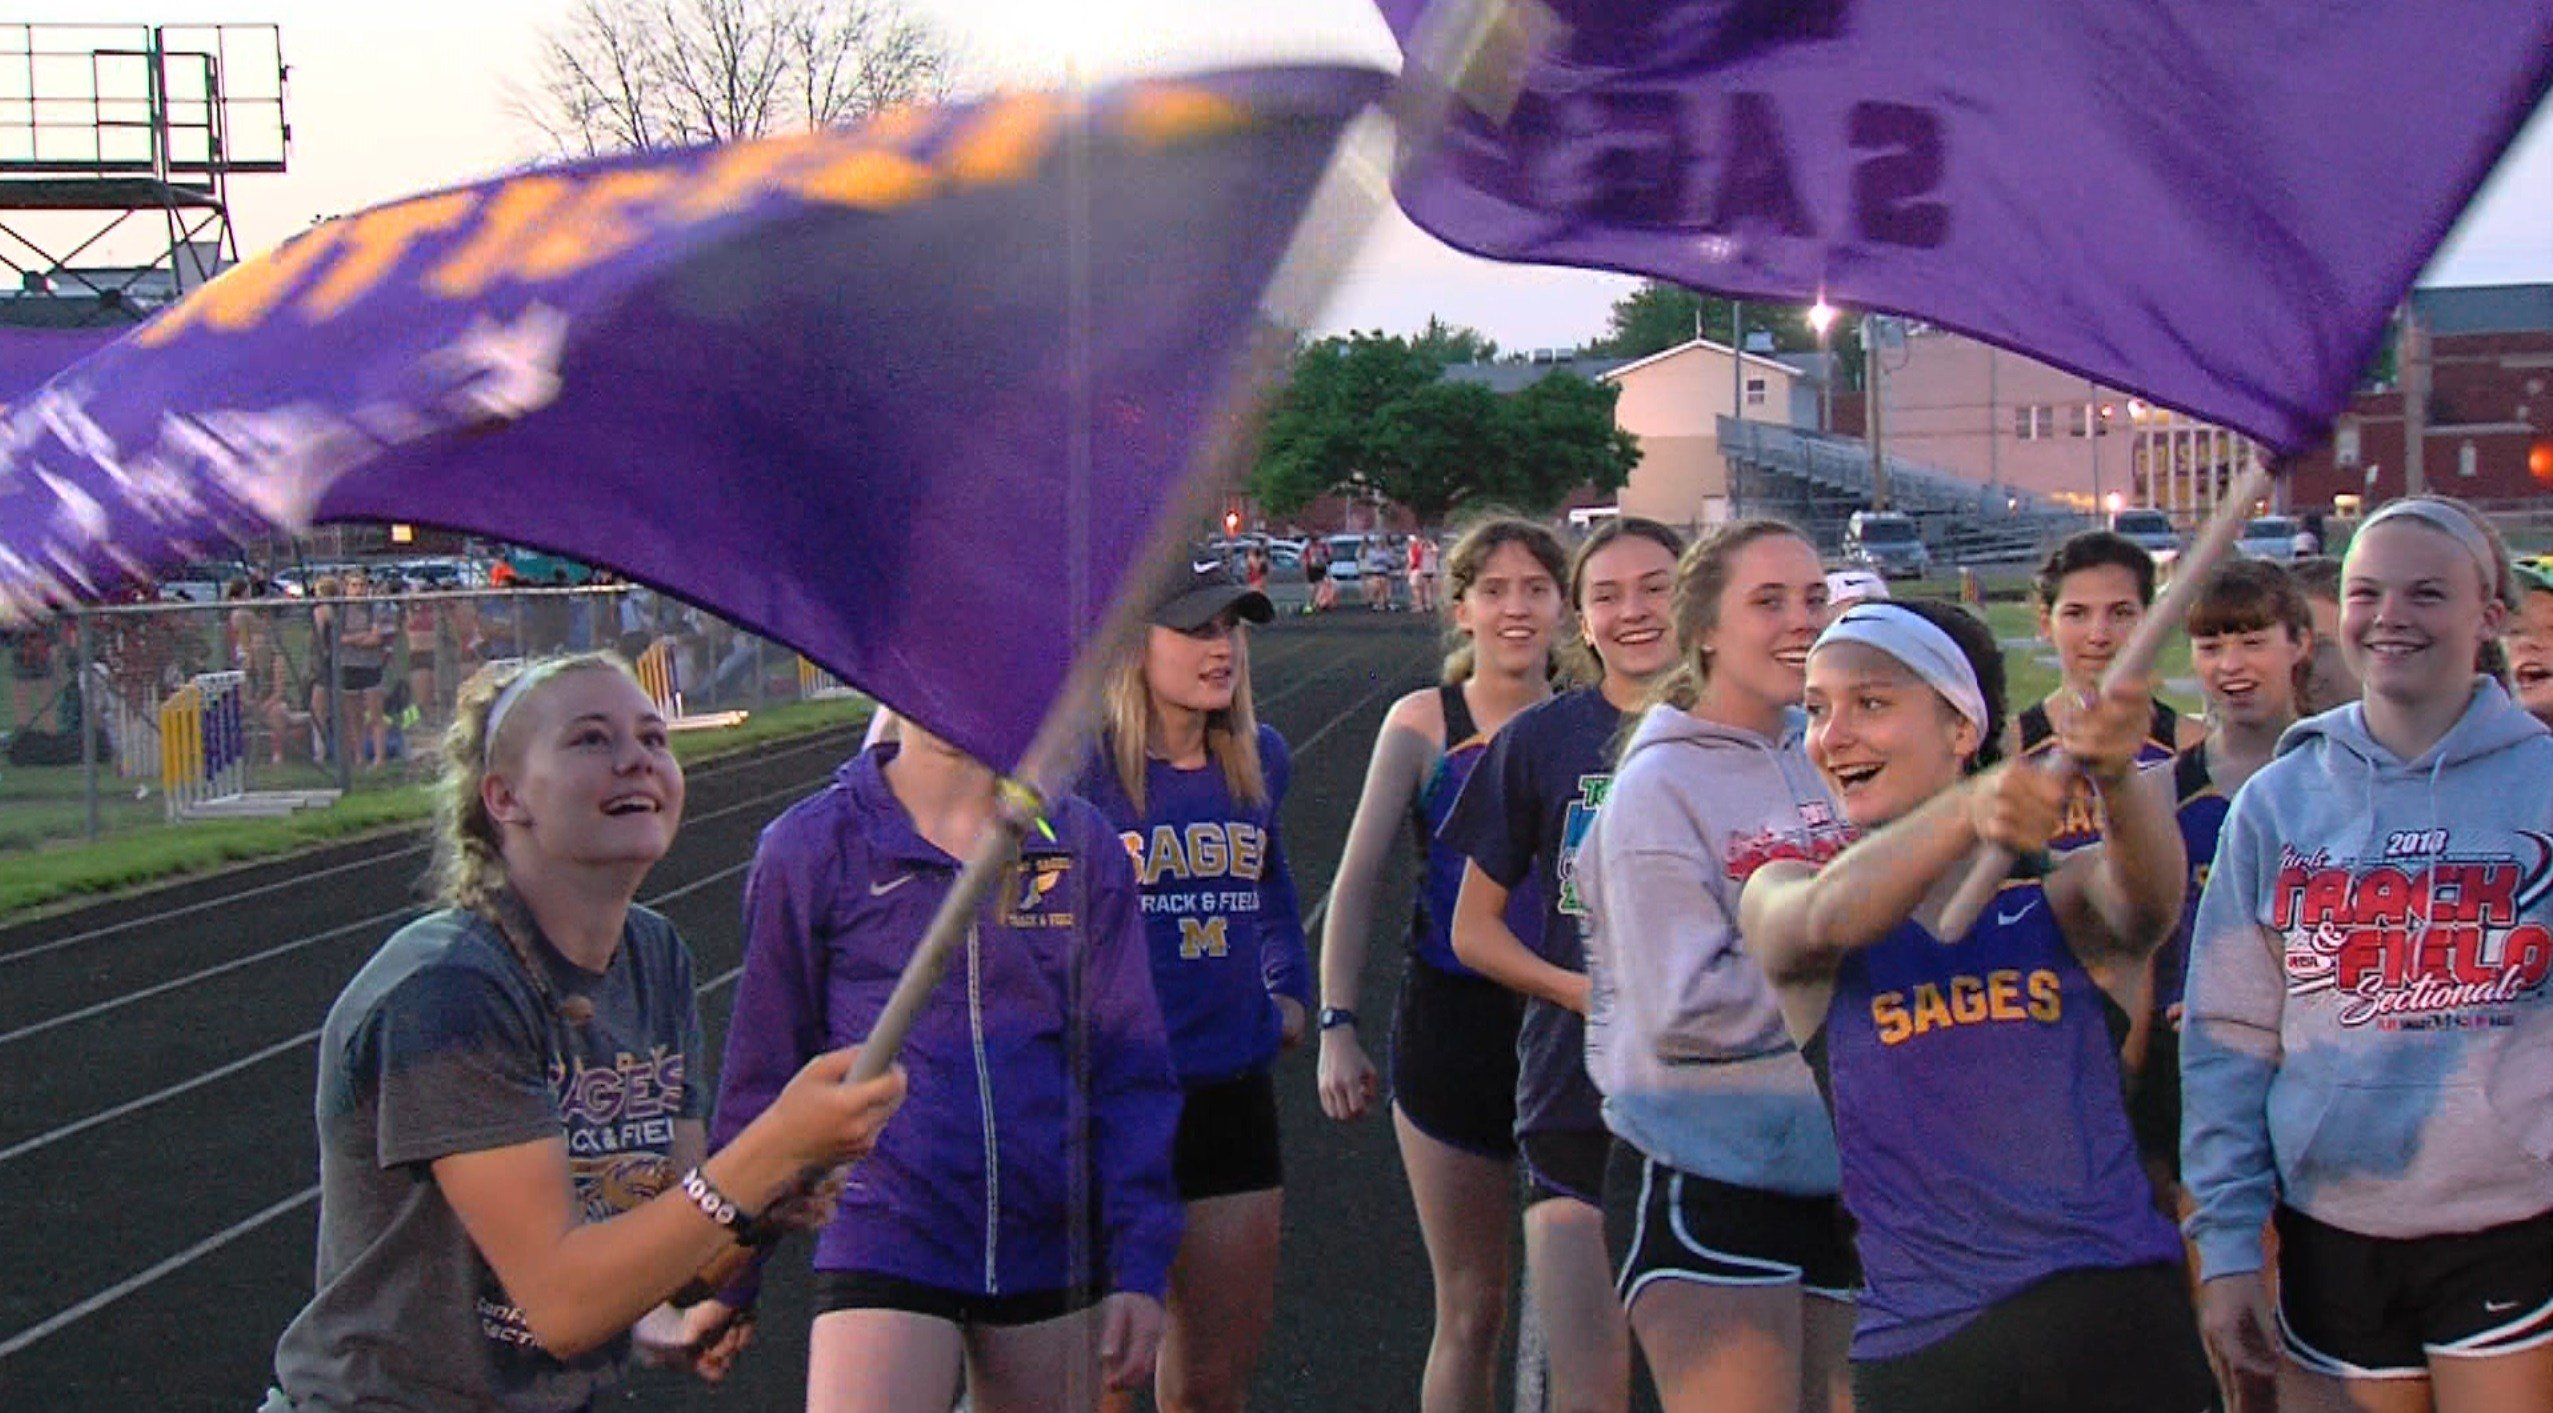 Monticello celebrates its fourth straight sectional title on Thursday night on the Sages' home track.